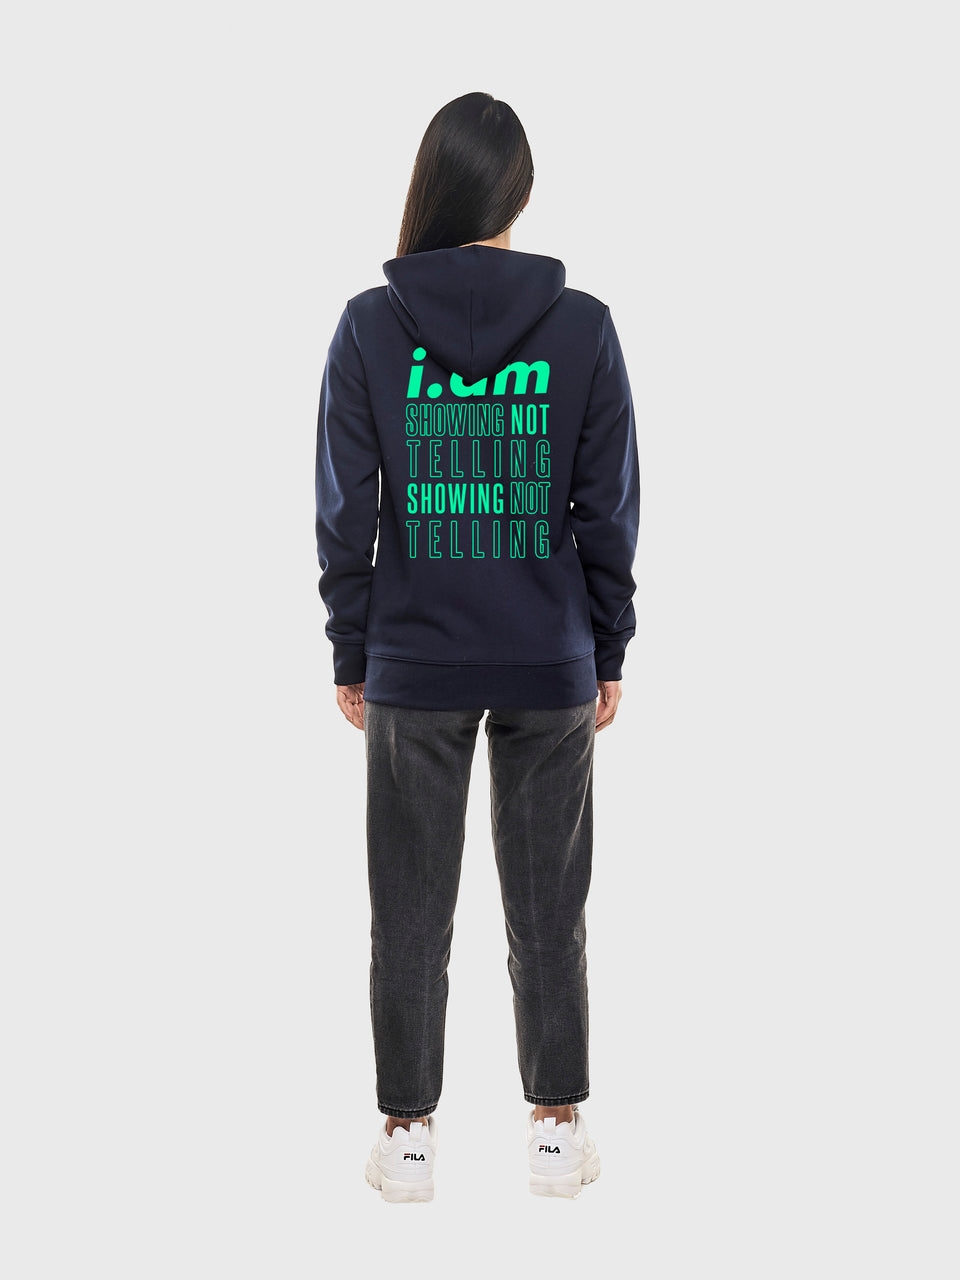 Showing not telling - Navy - Unisex zip up hoodie